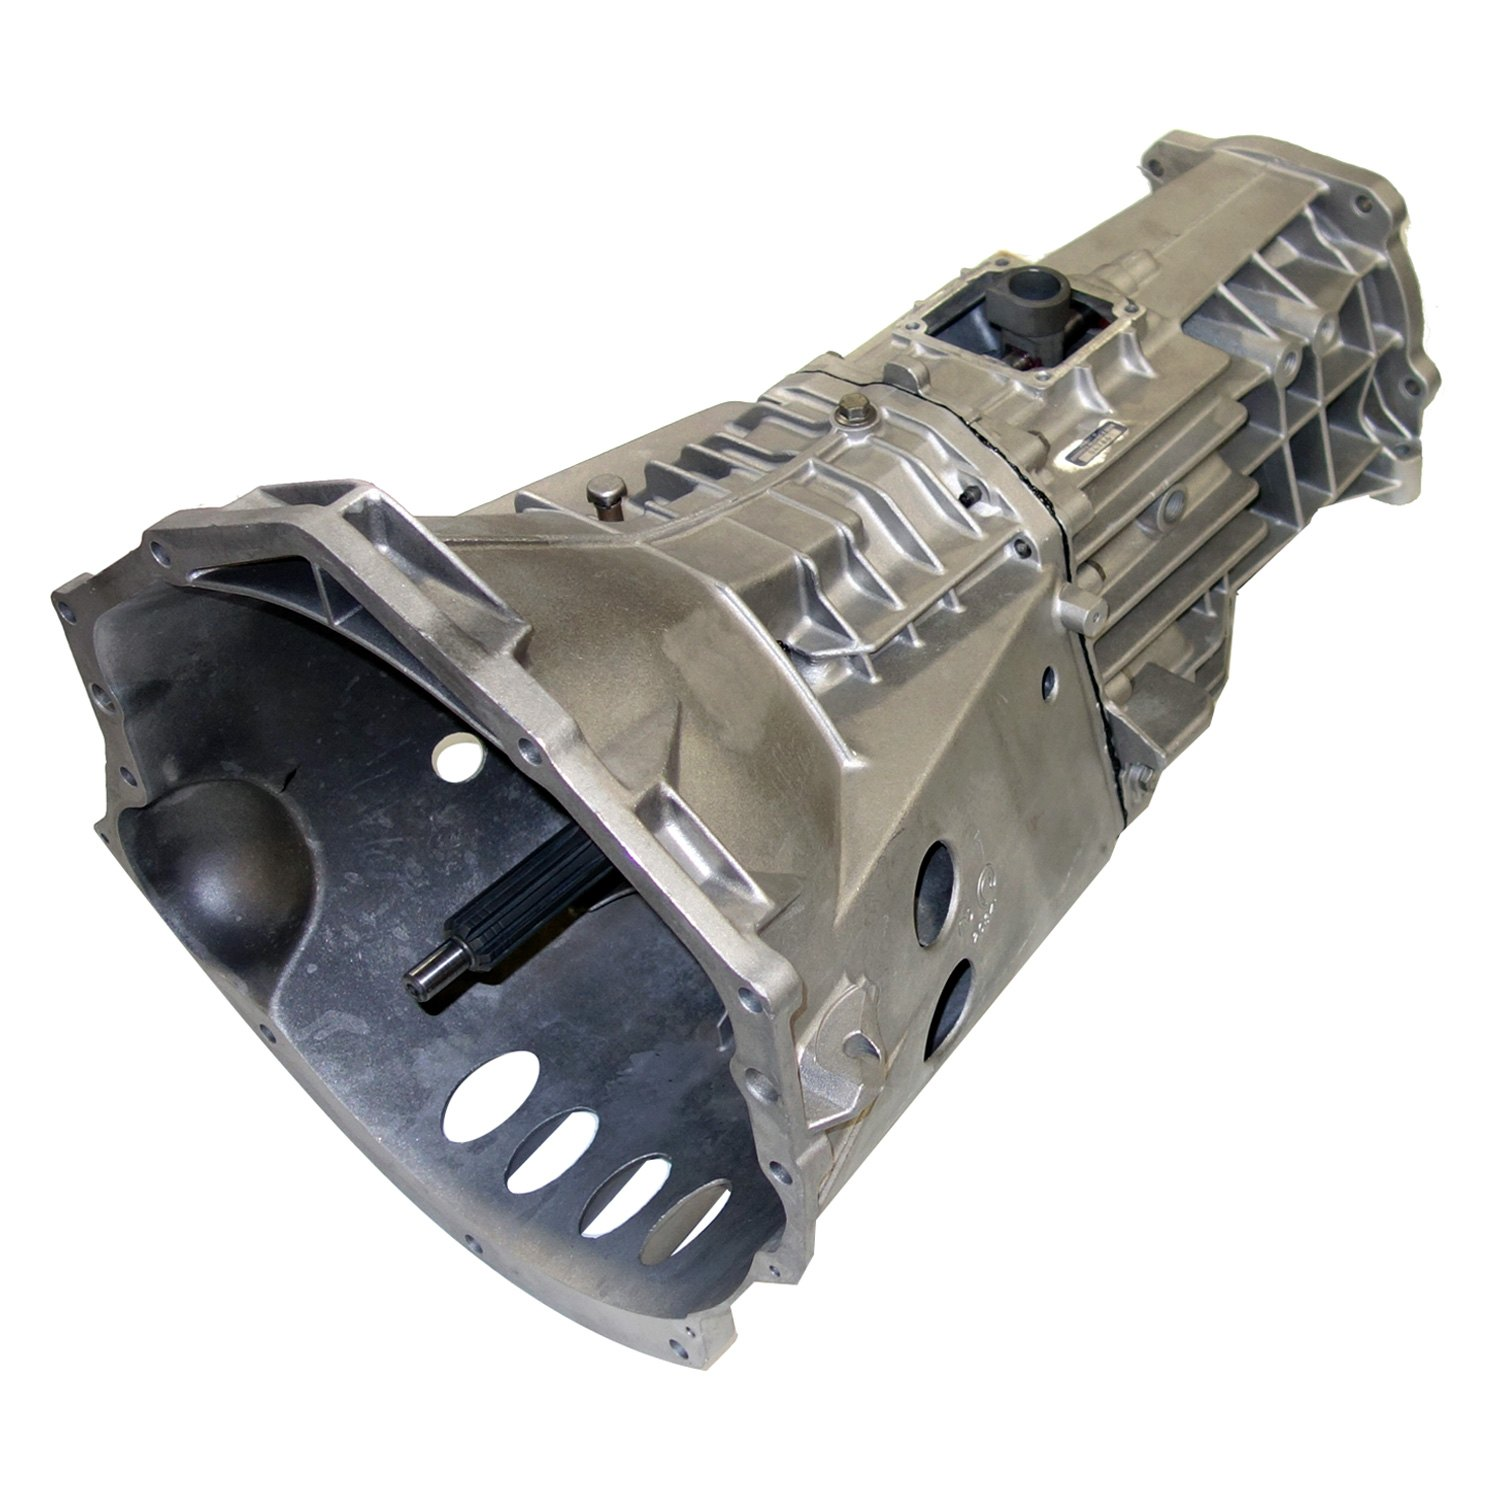 Used Chevrolet C10 Manual Transmission Parts for Sale